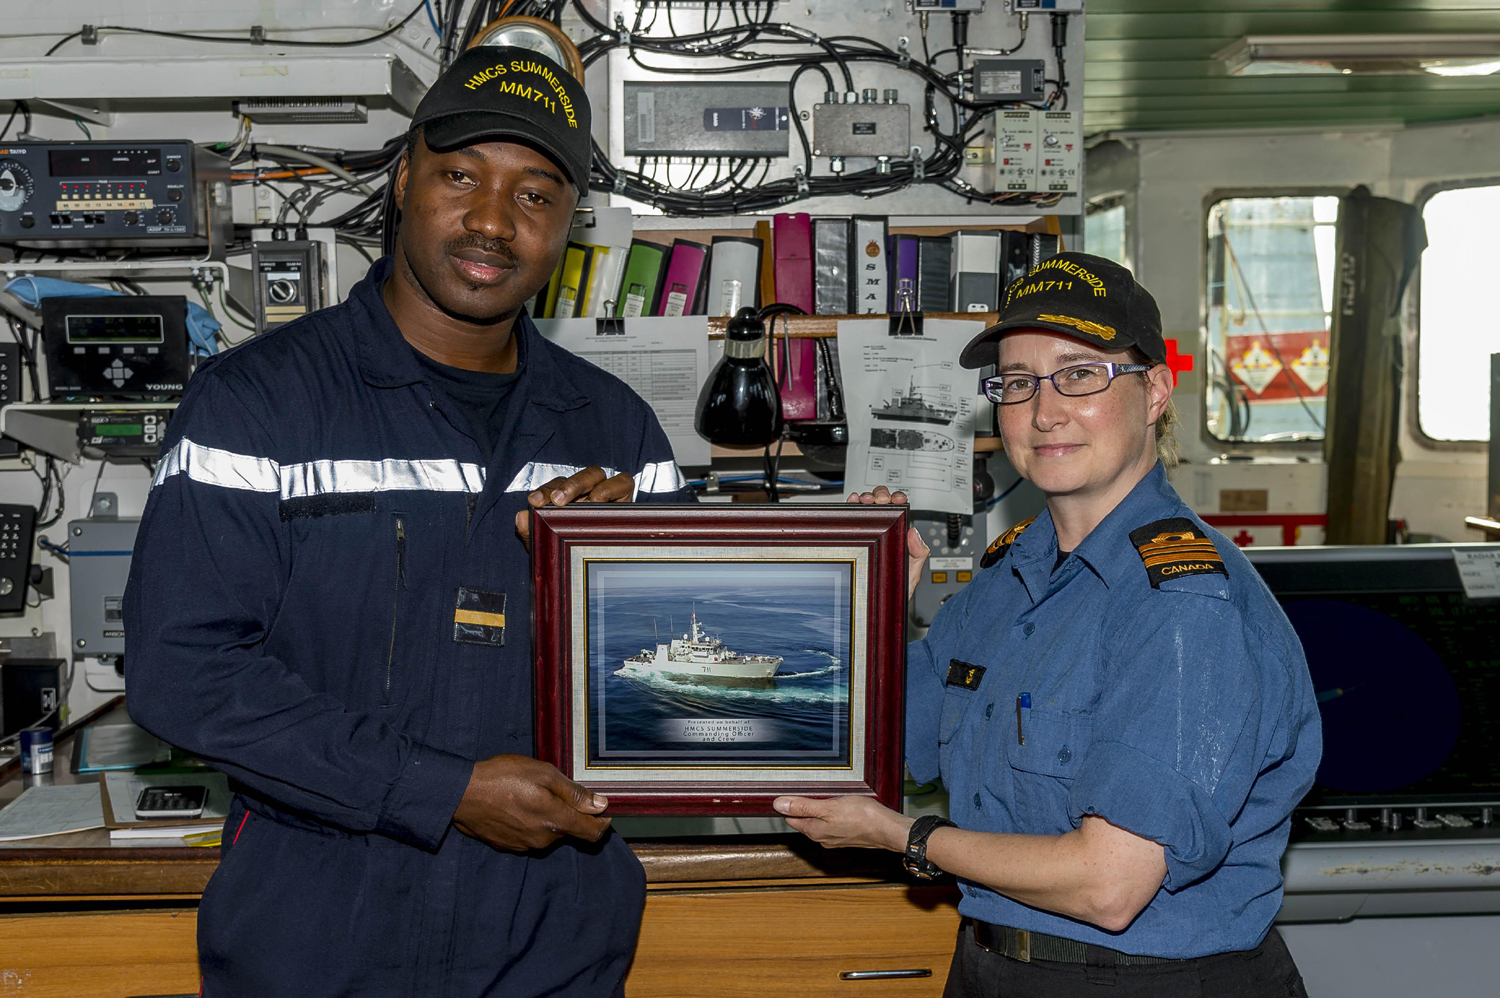 slide - Sub-Lieutenant Lassina Traoré, left, a member of the Ivory Coast Navy, receives a framed photograph of HMCS Summerside from Commanding Officer Lieutenant-Commander Emily Lambert, to remind him of his time as an exchange officer aboard the ship.